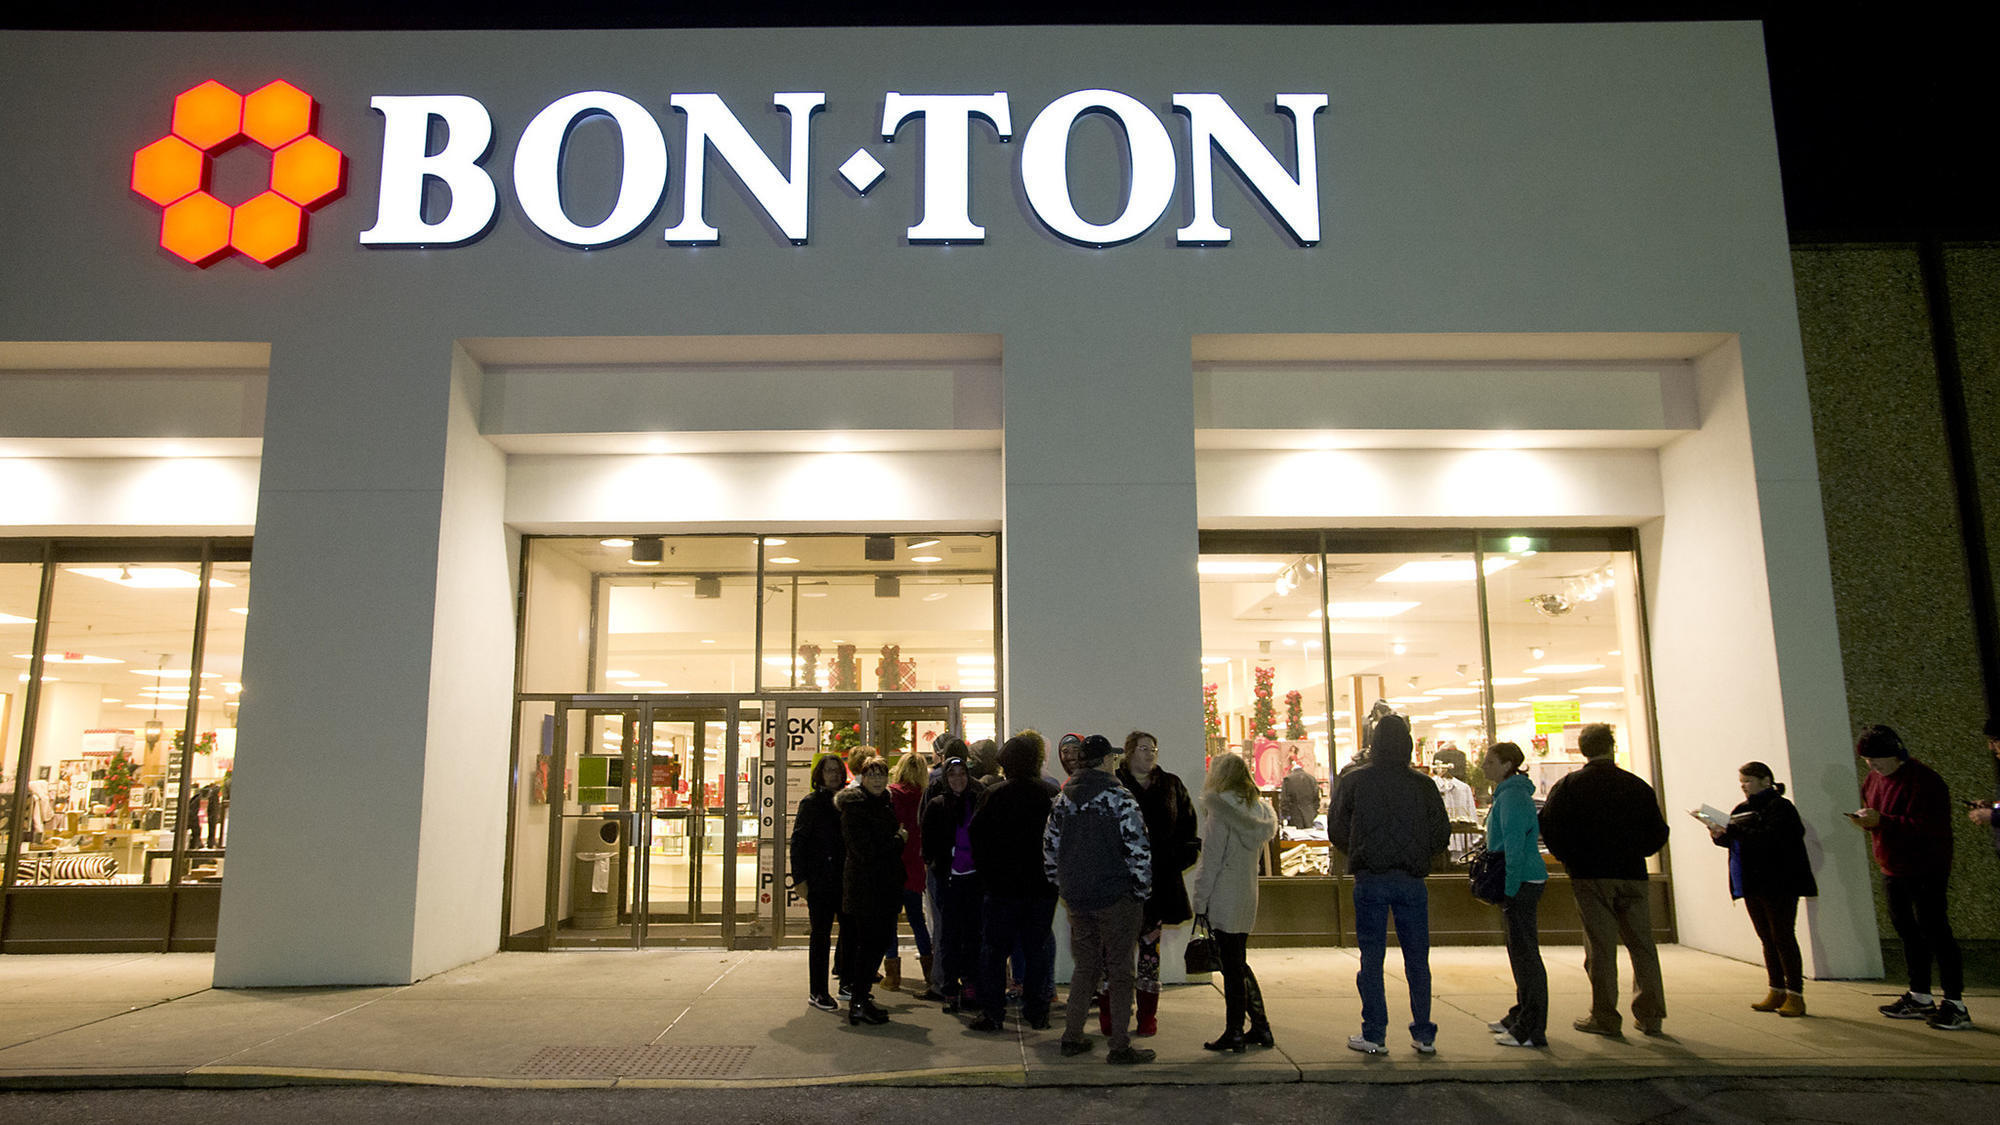 The Bon-Ton Stores began the decade by opening more stores, establishing a new division, Maxwell's, and acquiring Fowler's department store in New York. When Tim Grumbacher was made CEO in , the company operated 18 stores in four submafusro.mlarters: Merrillville, Indiana.